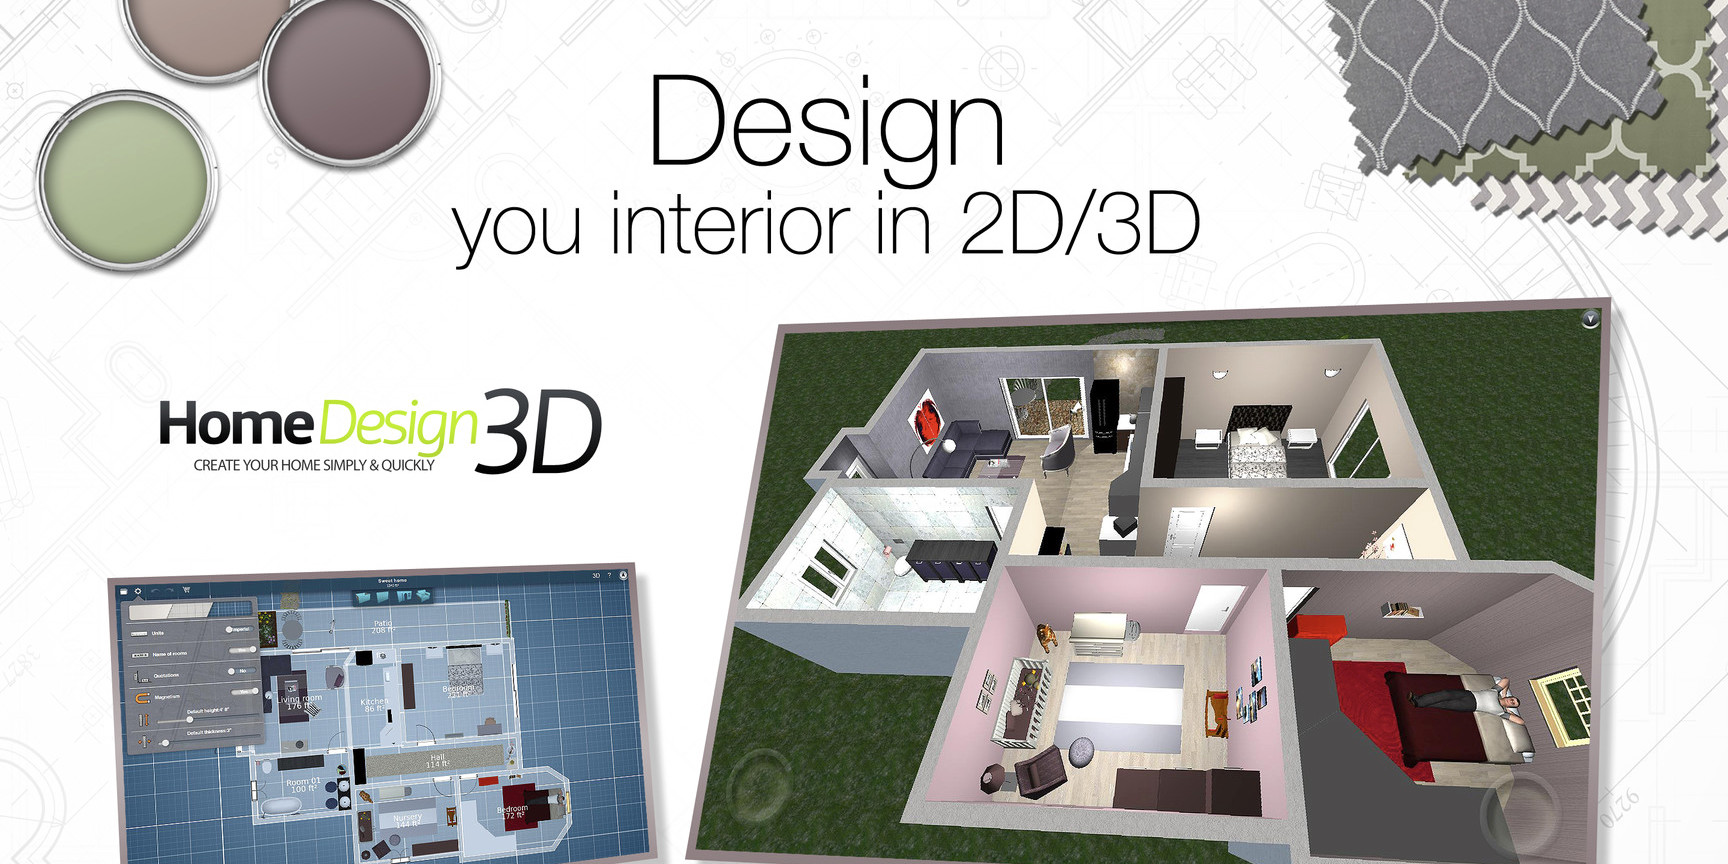 Beautiful Home Designer 3D For IOS/Mac Goes Free For The First Time, GOLD Version $1  (Reg. Up To $10)